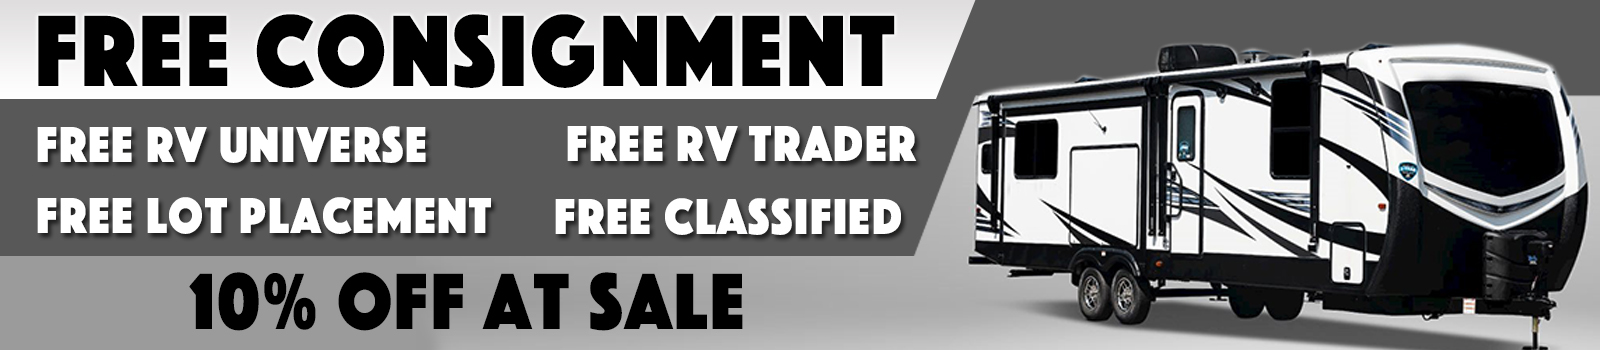 Free Consignment